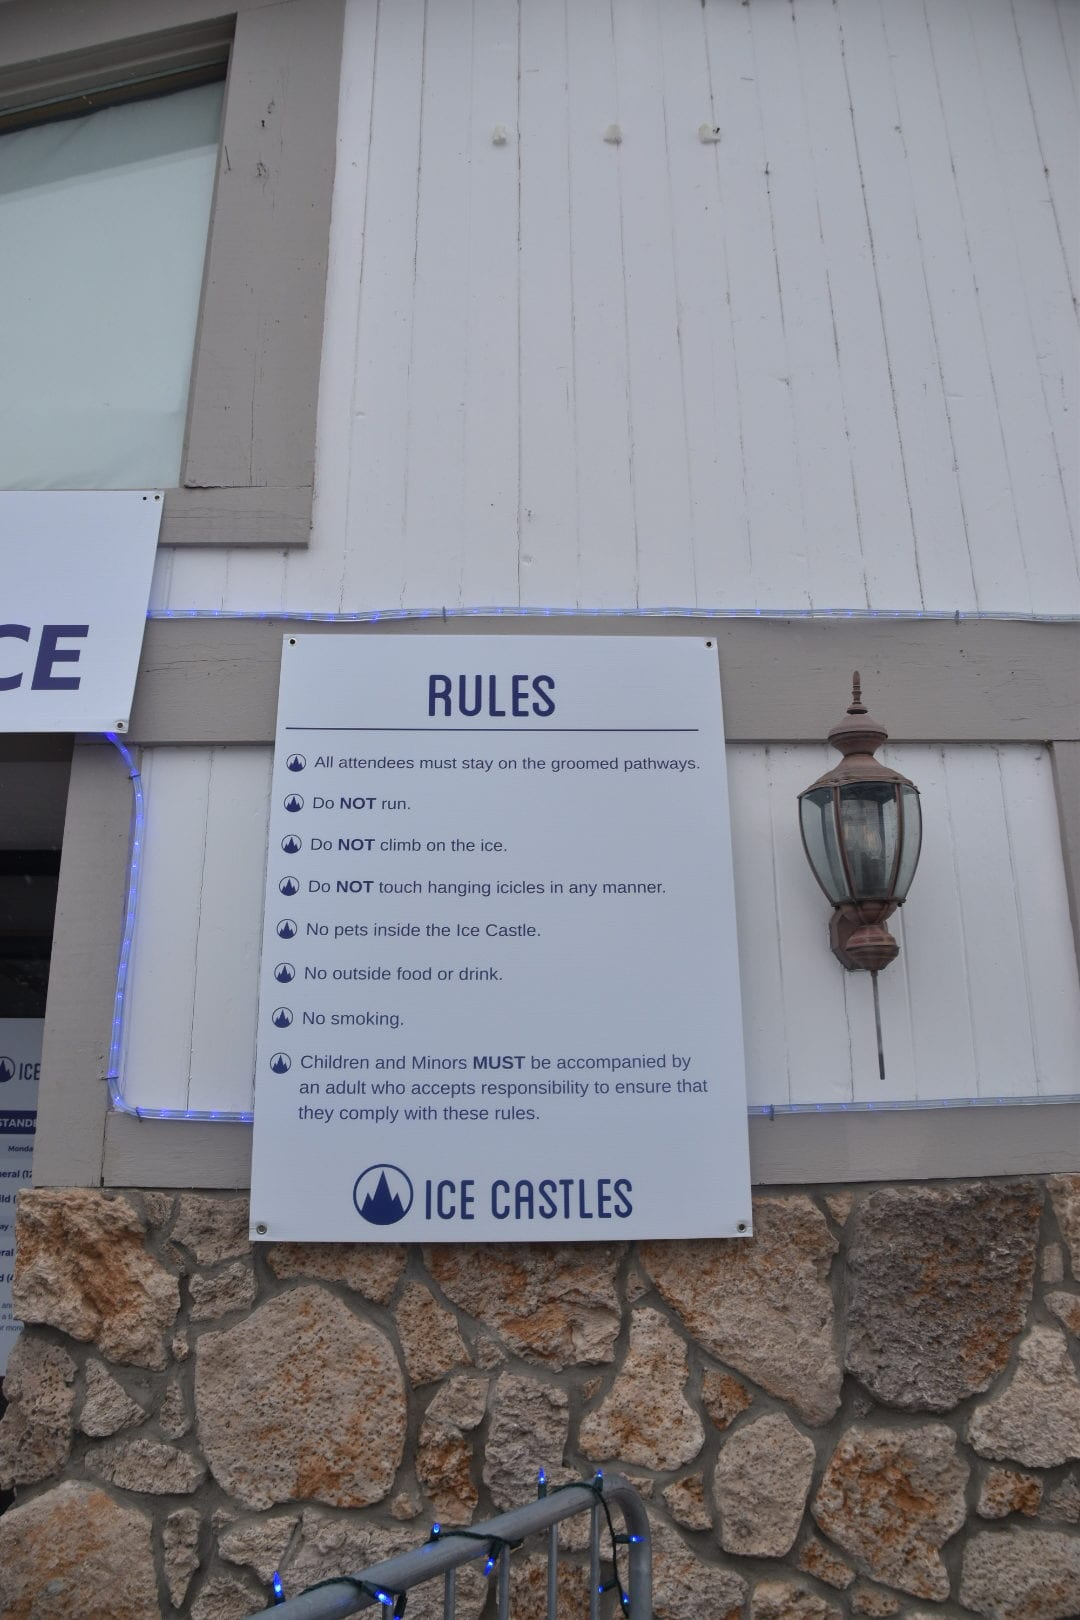 Rules for Ice Castle